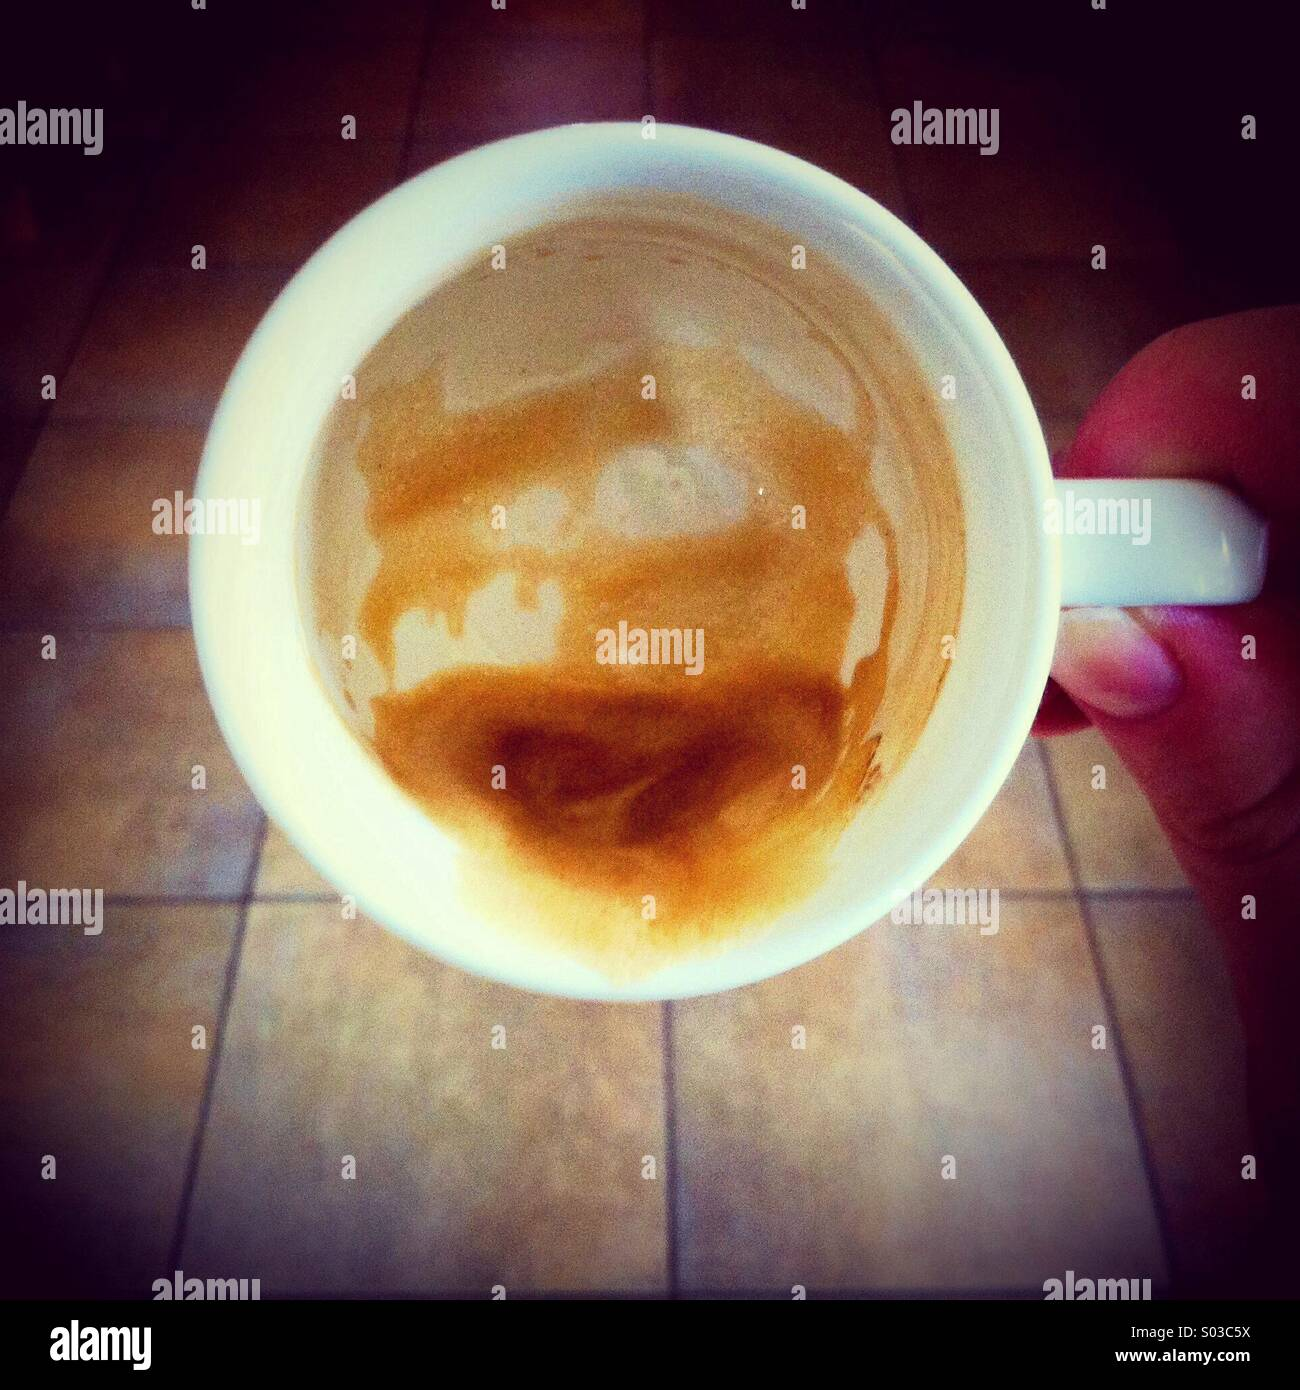 Last dregs of coffee from an espresso cup - Stock Image